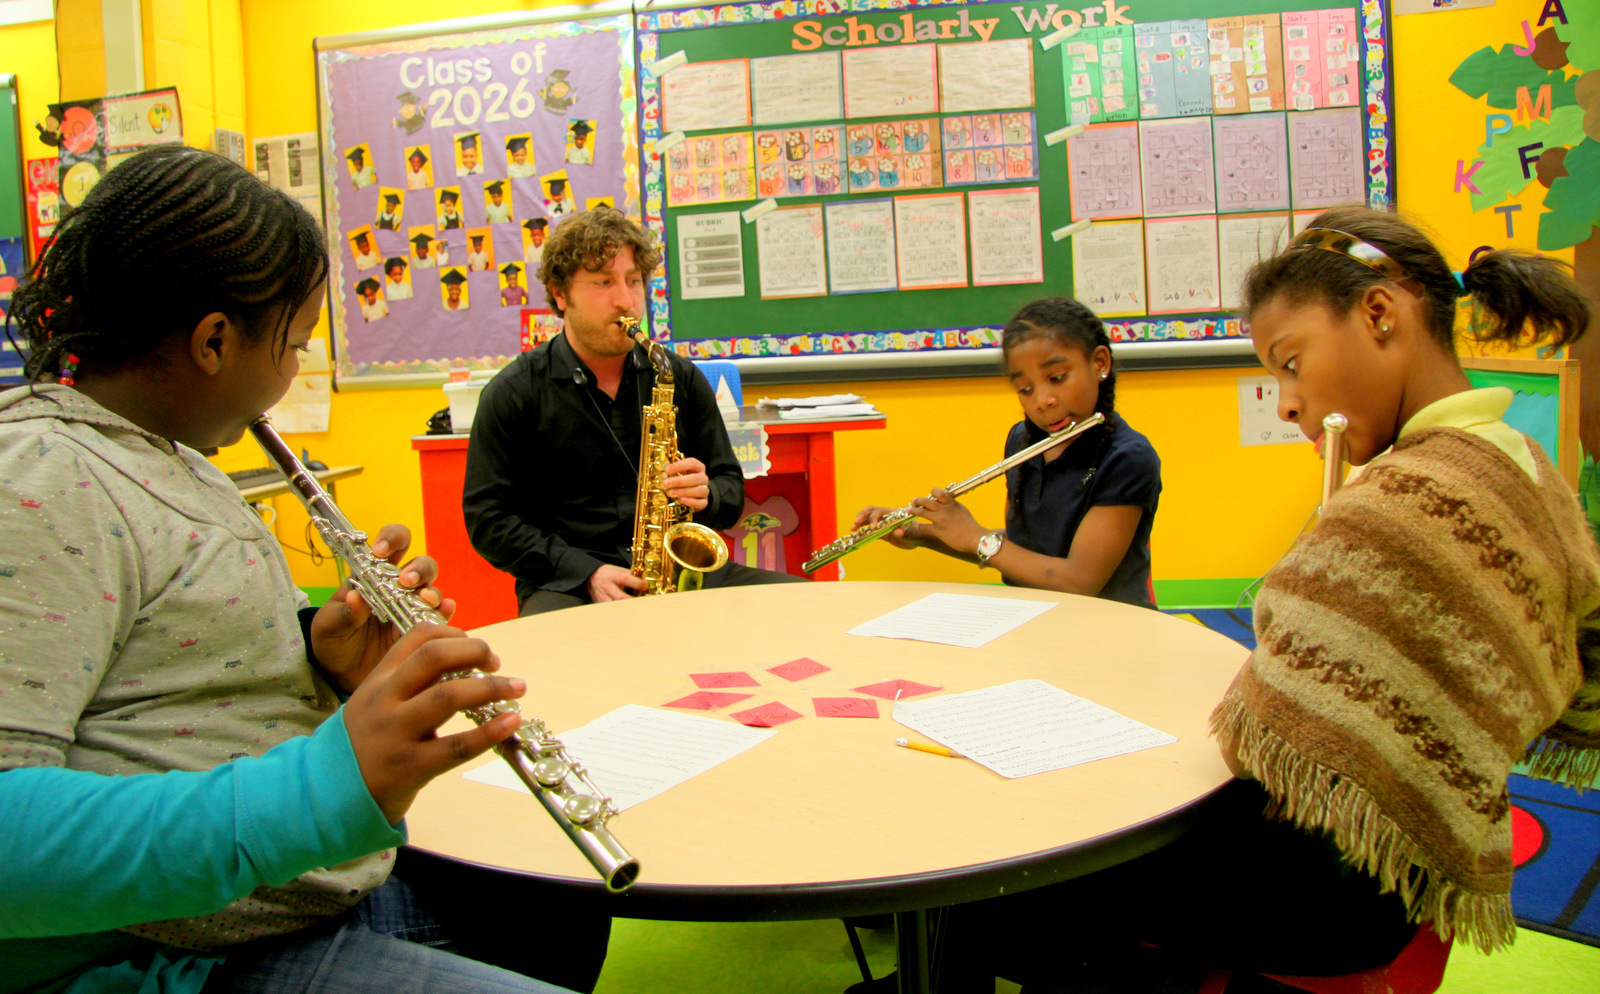 Russell Kirk works with the OrchKids flutists, (l to r) Dashney White, Kaneese Mack and Dia Simmons. (Photo by Fern Shen)